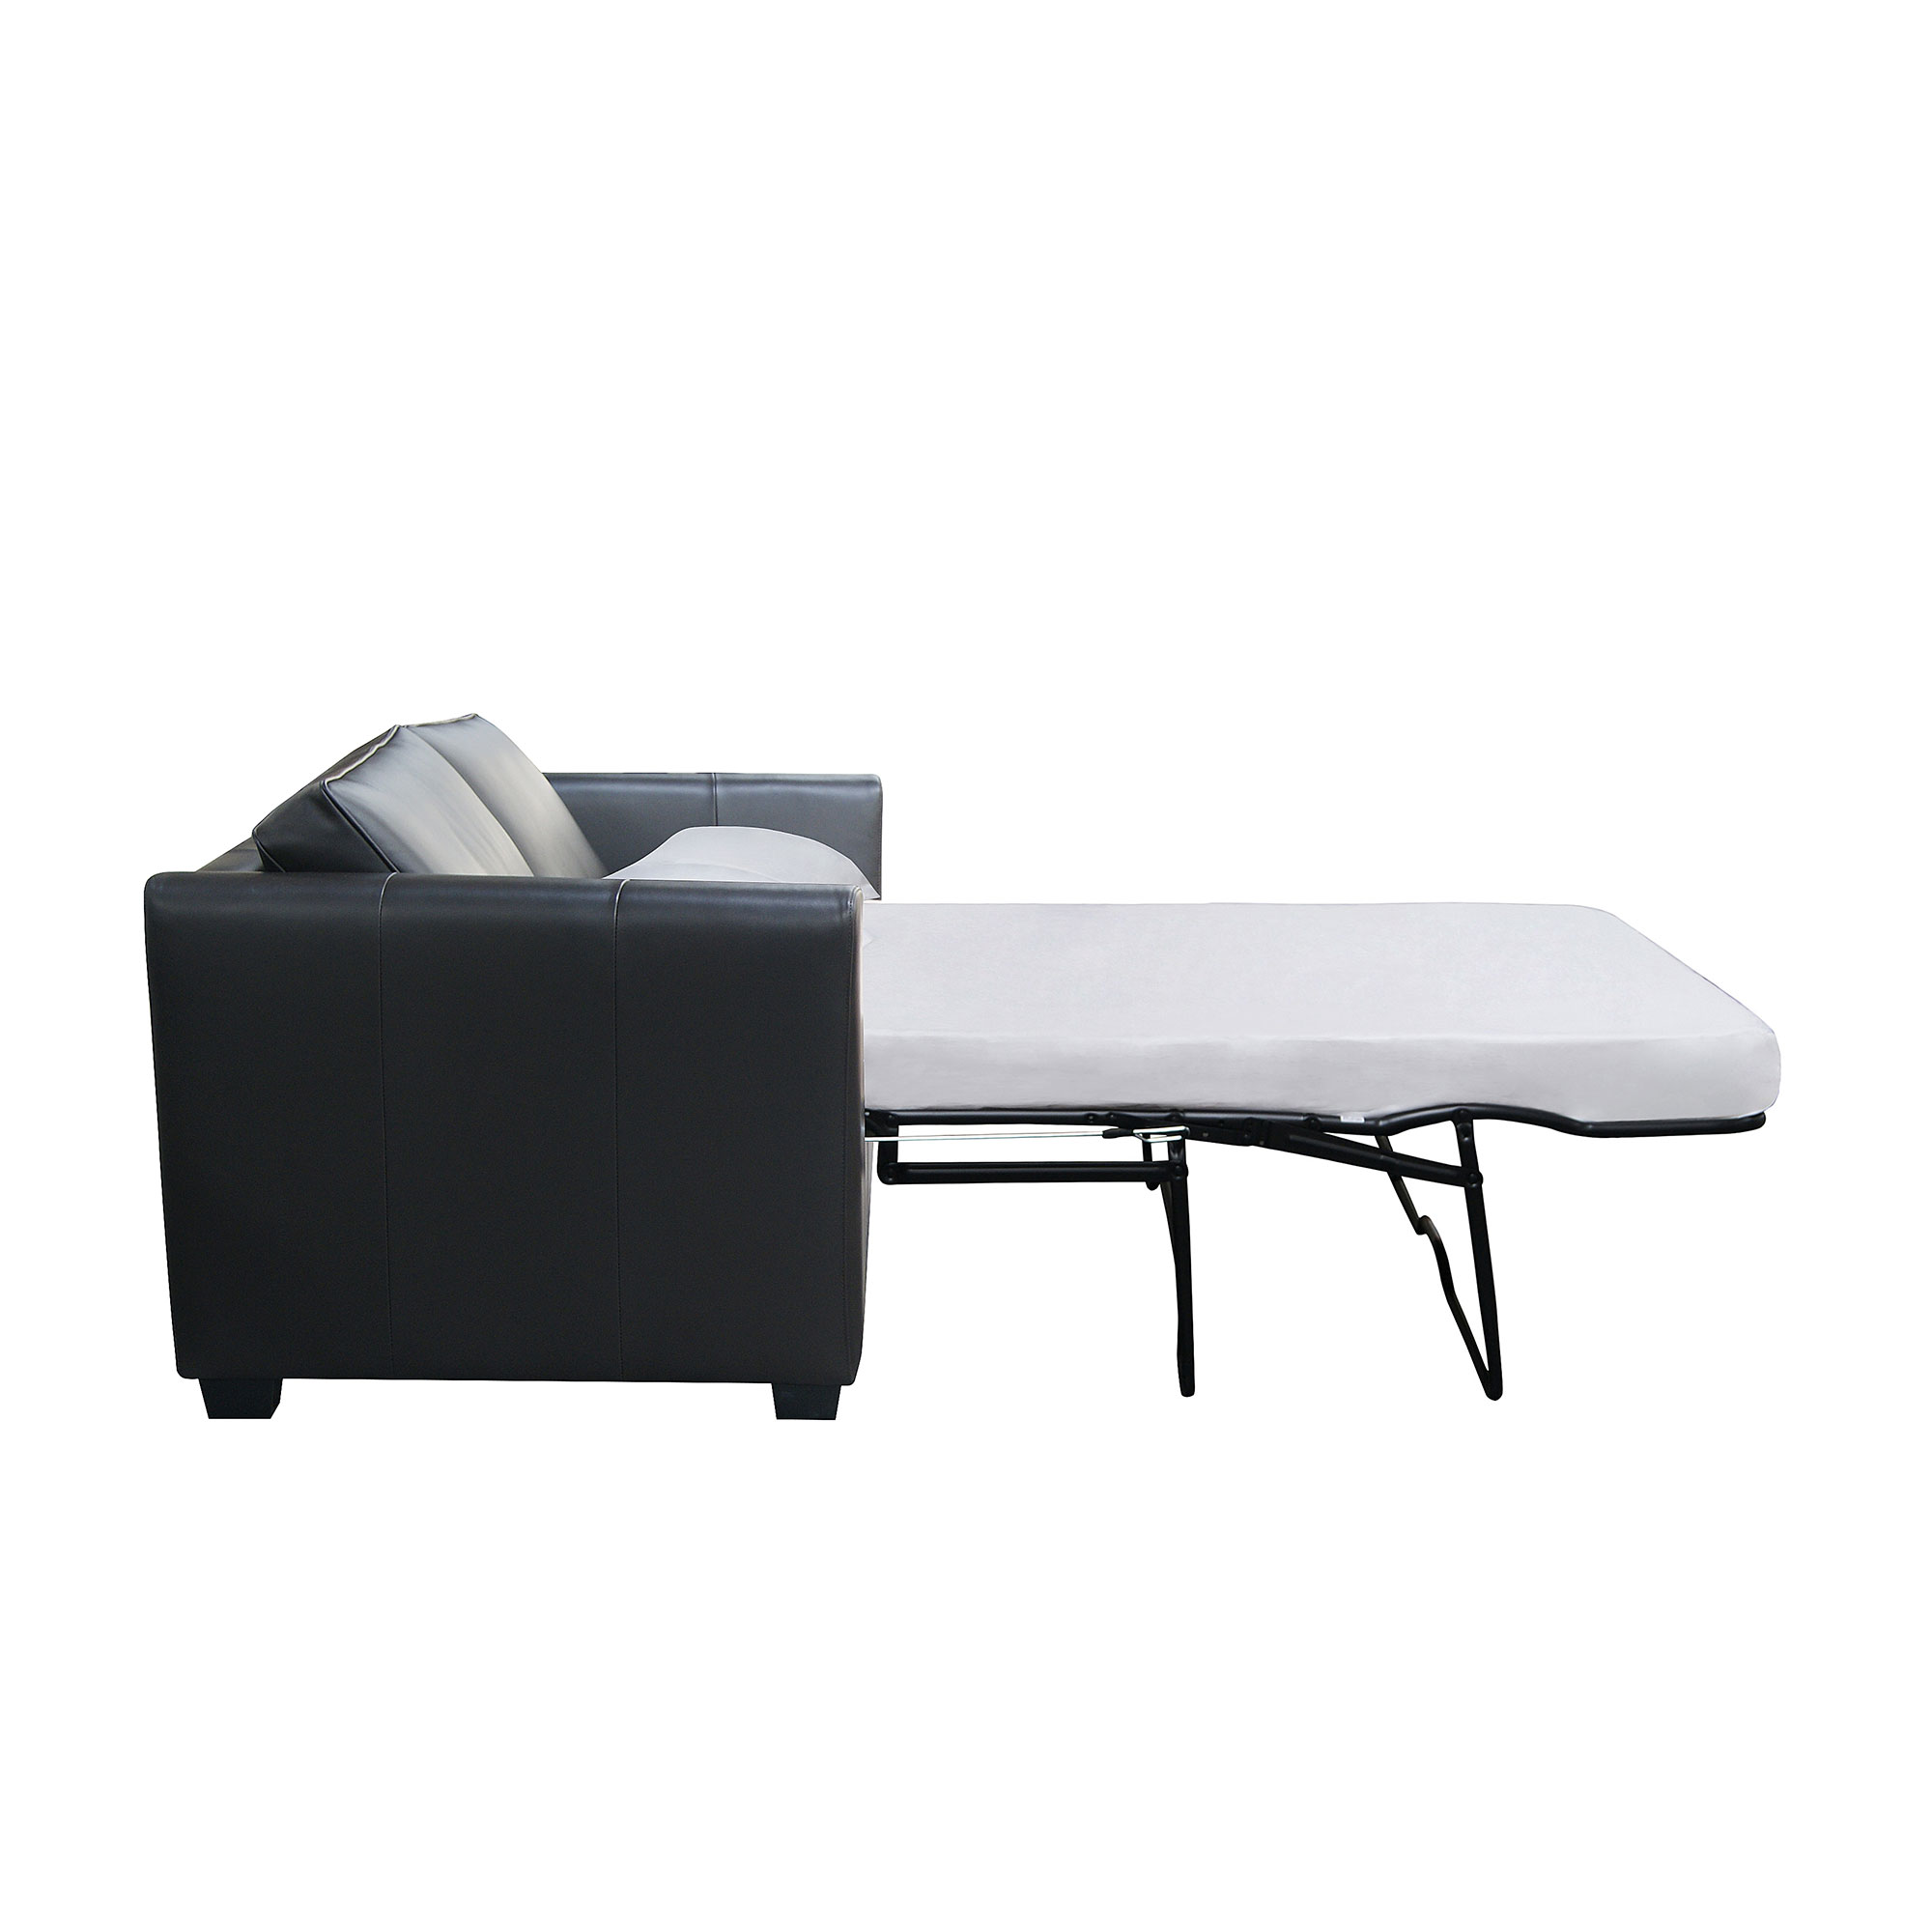 Zen Sofa Moran Furniture